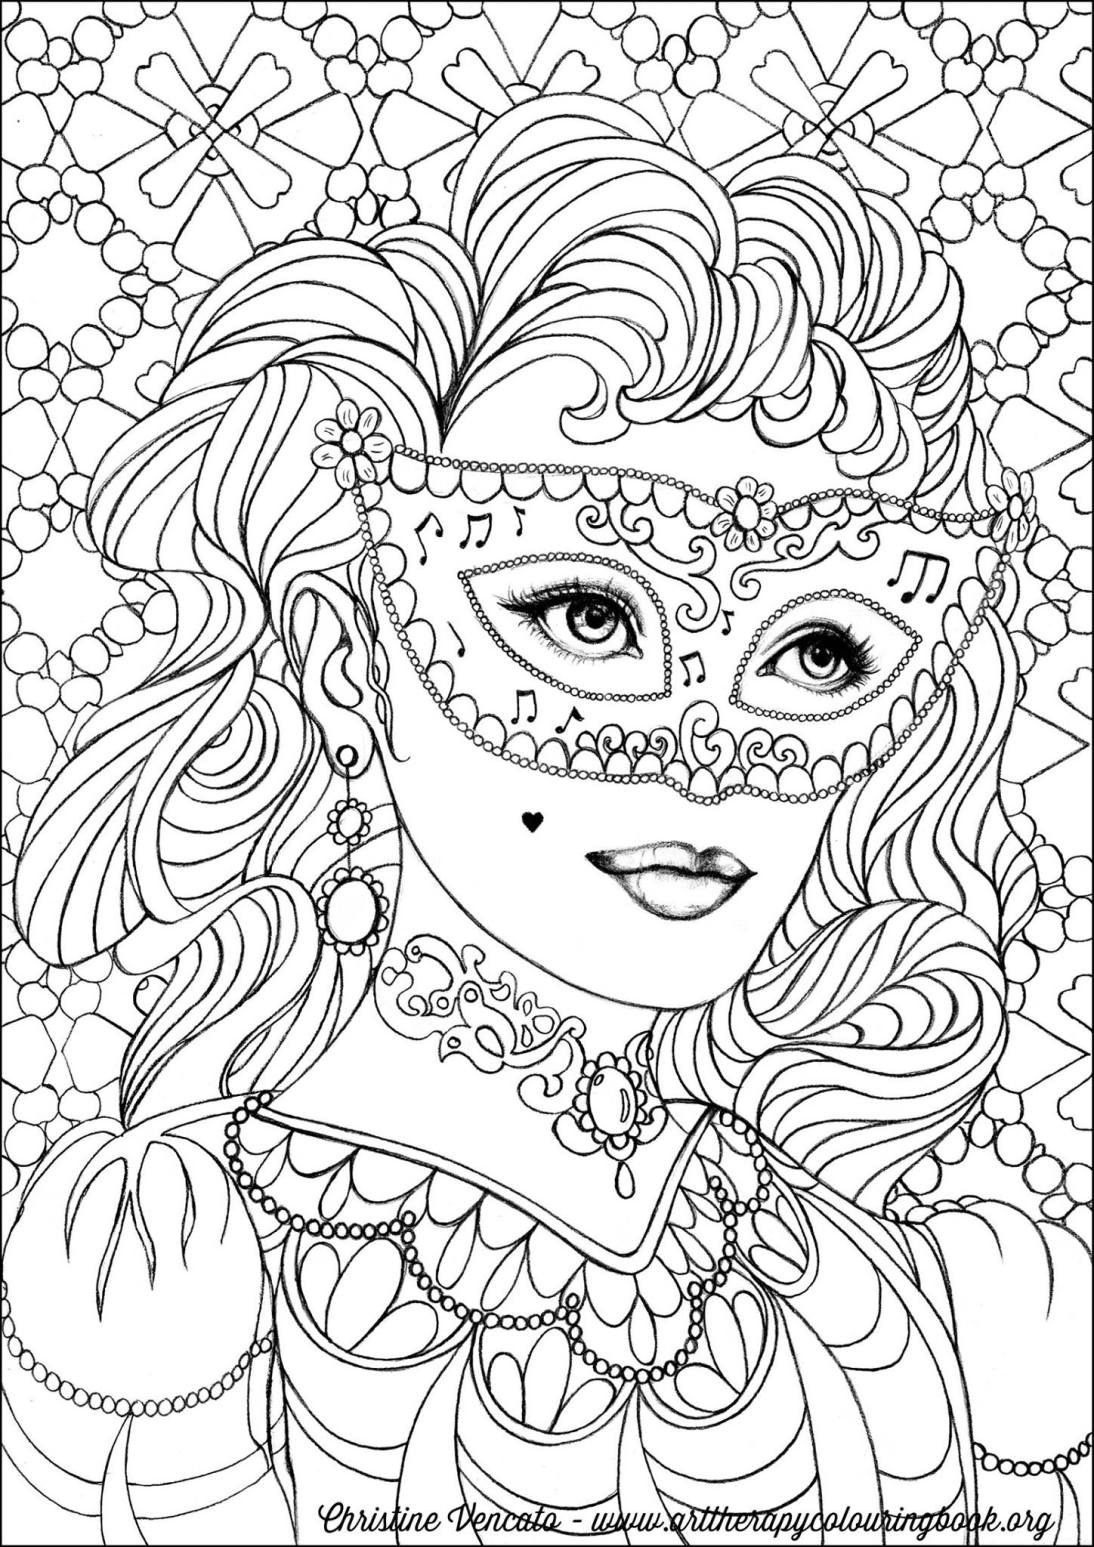 Free Coloring Page From Adult Coloring Worldwide. Art by